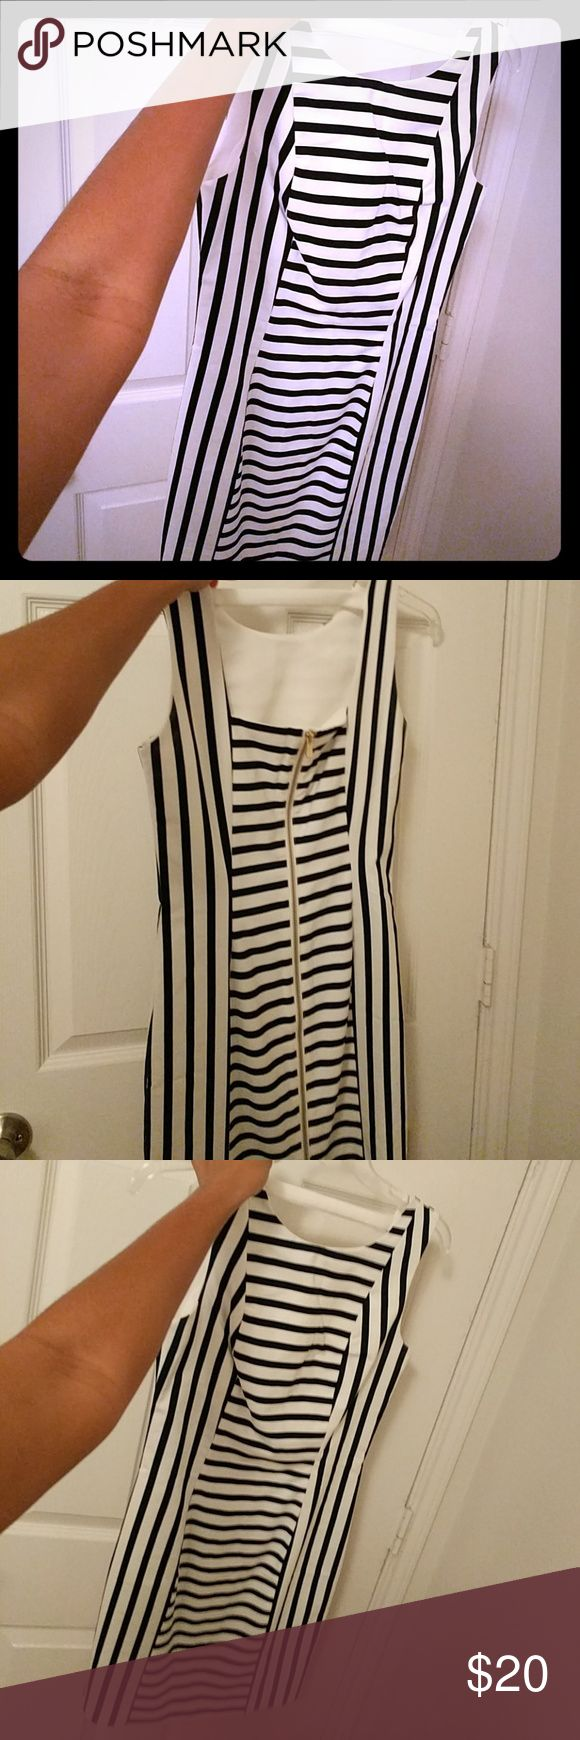 Navy blue and white cocktail dress Gold zip-up in the back. Great for parties and formal events. Best paired with a blazer. Never worn. H&M Dresses Midi